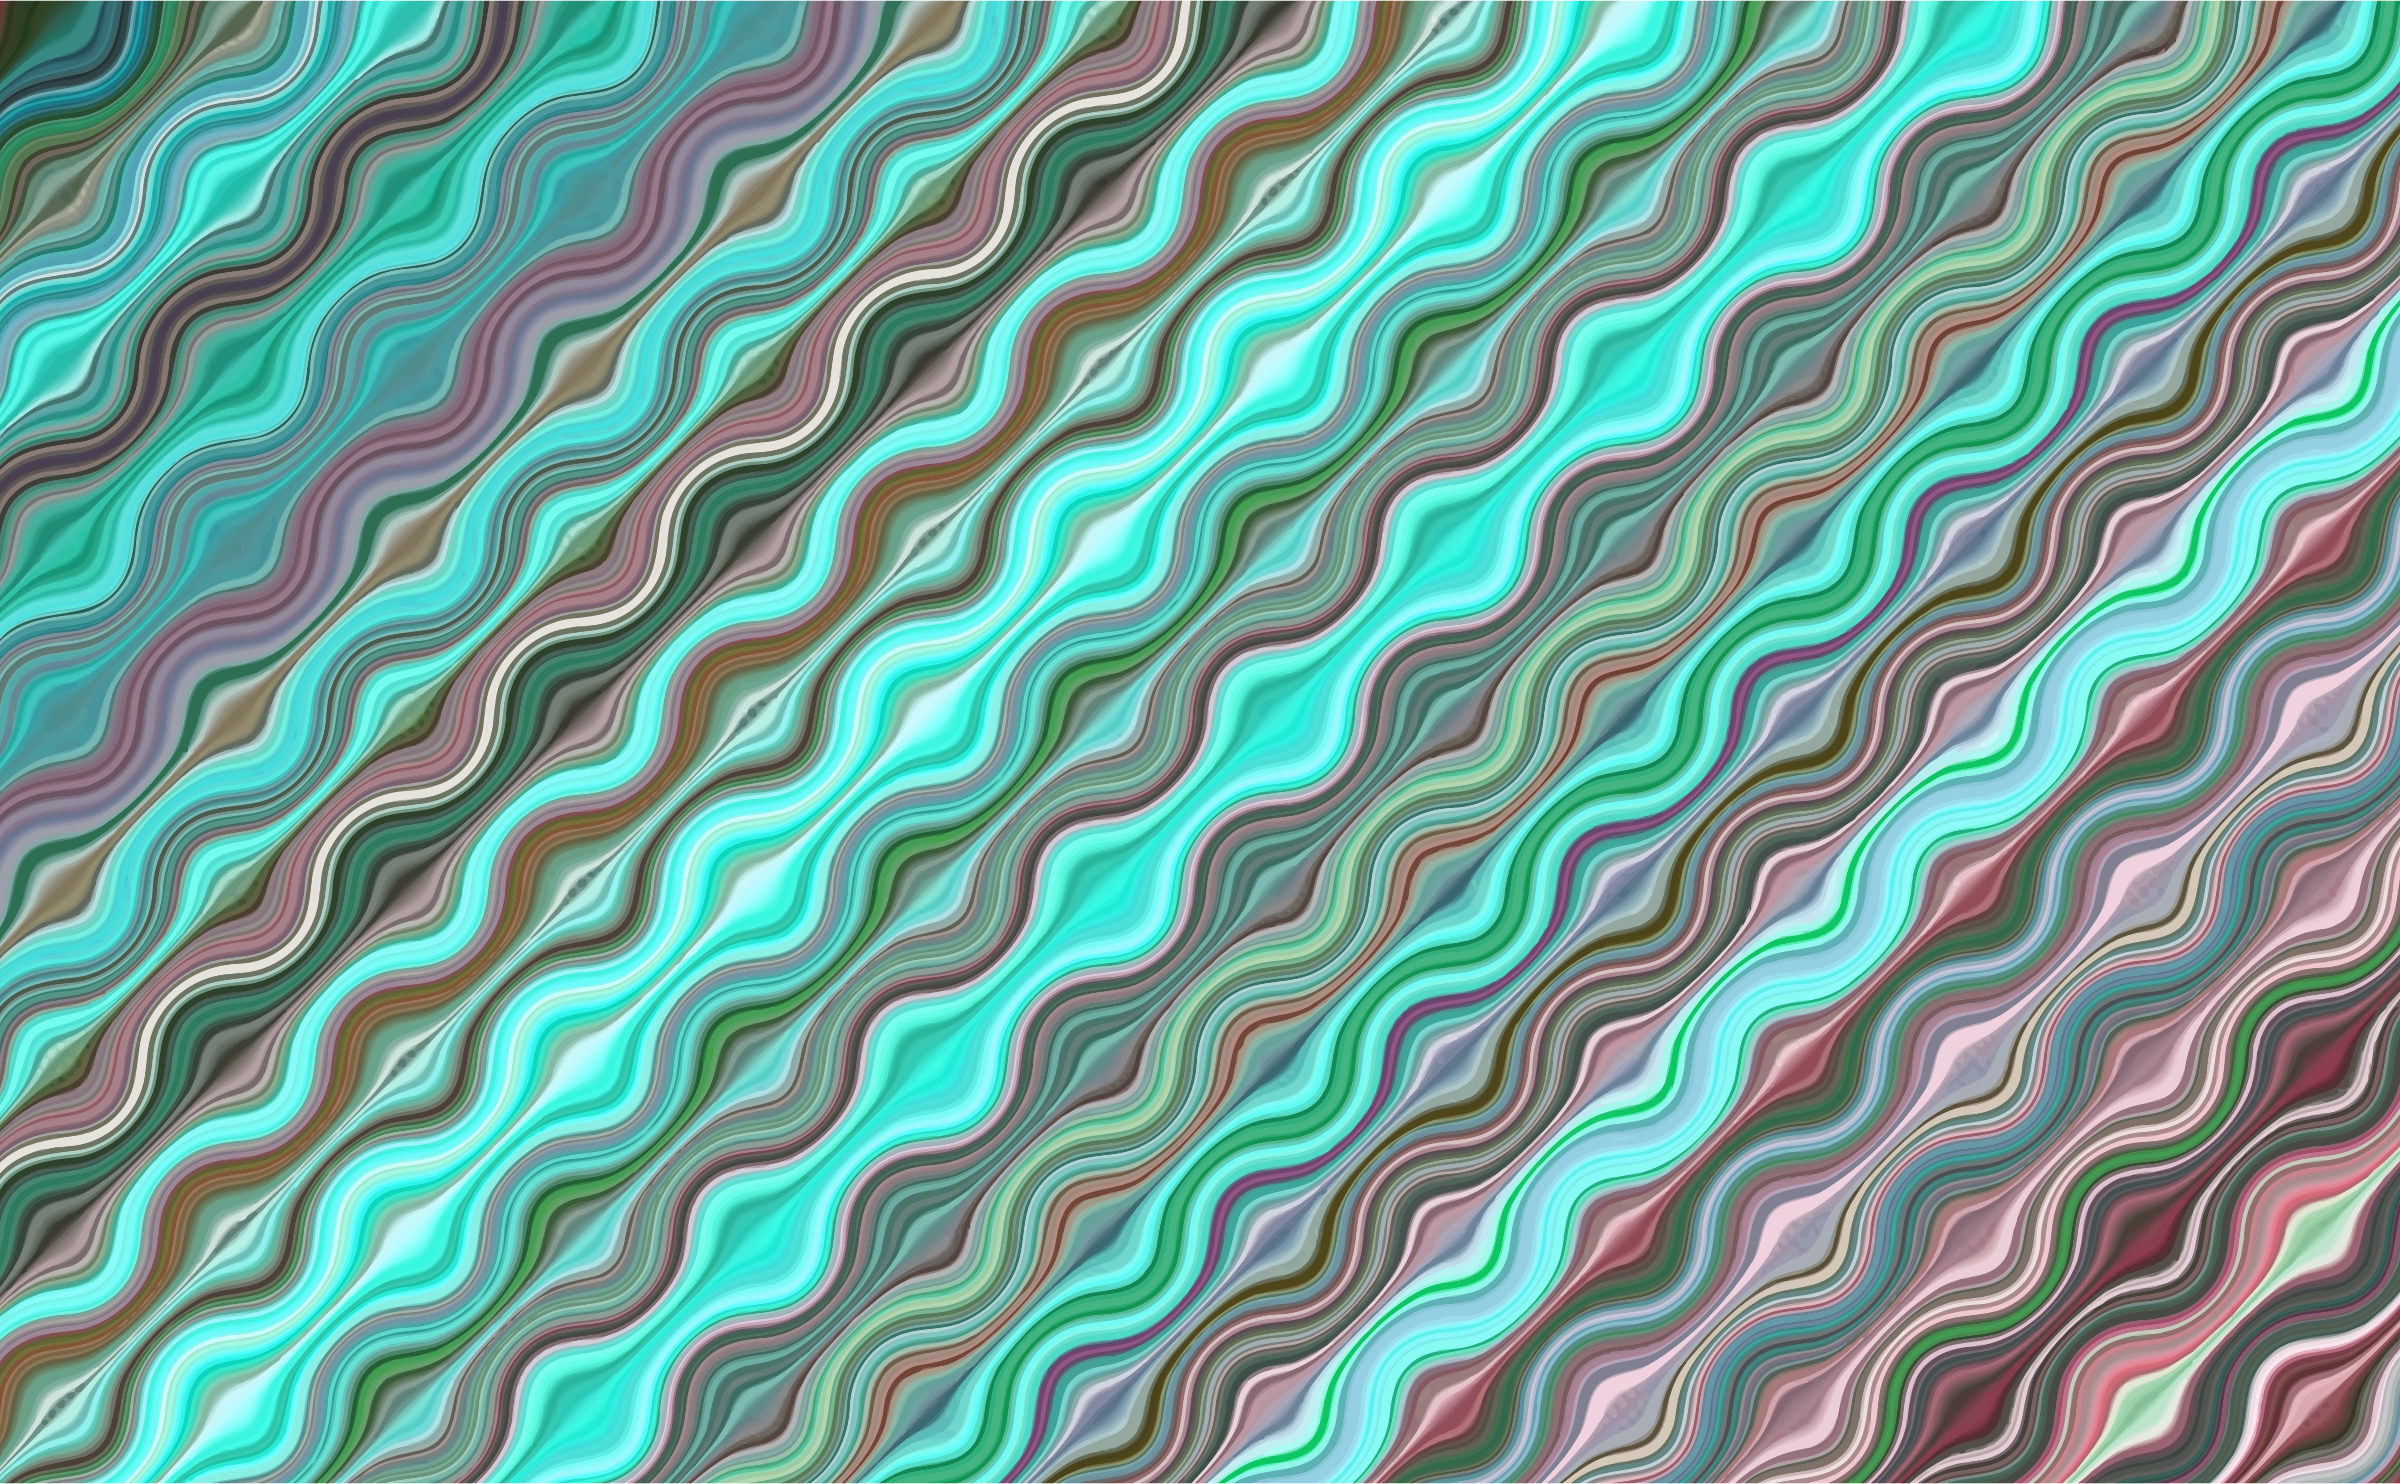 Background pattern 216 (colour 5) by Firkin